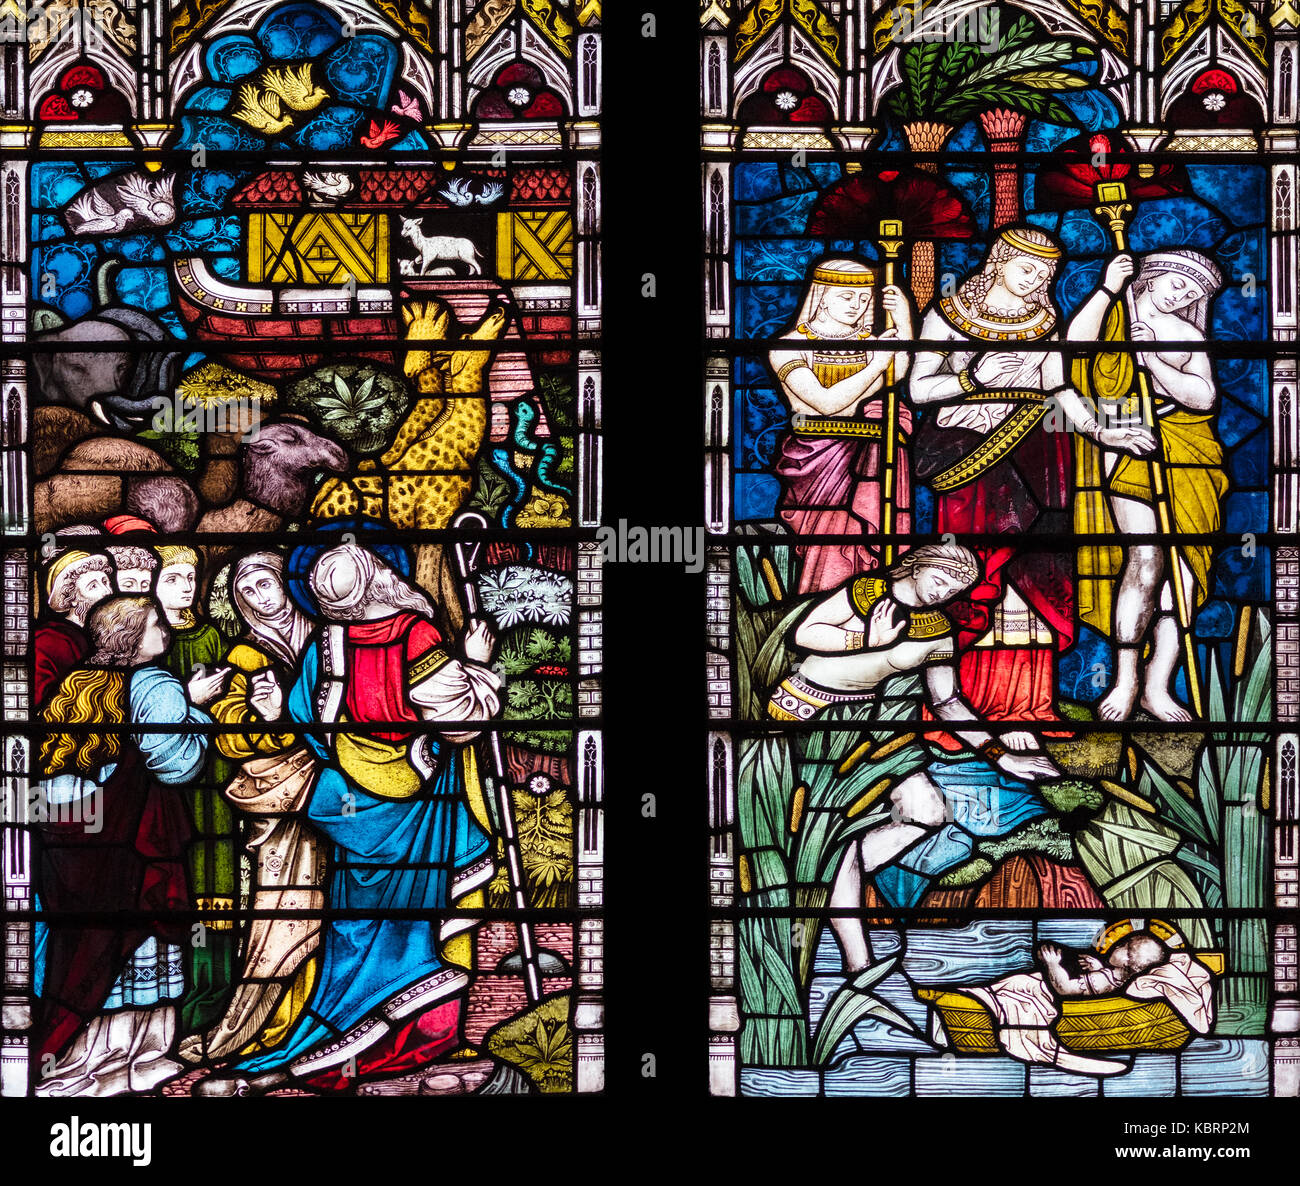 The preservation of life, Clayton and Bell 1880, Hull Minster, United Kingdom - Stock Image